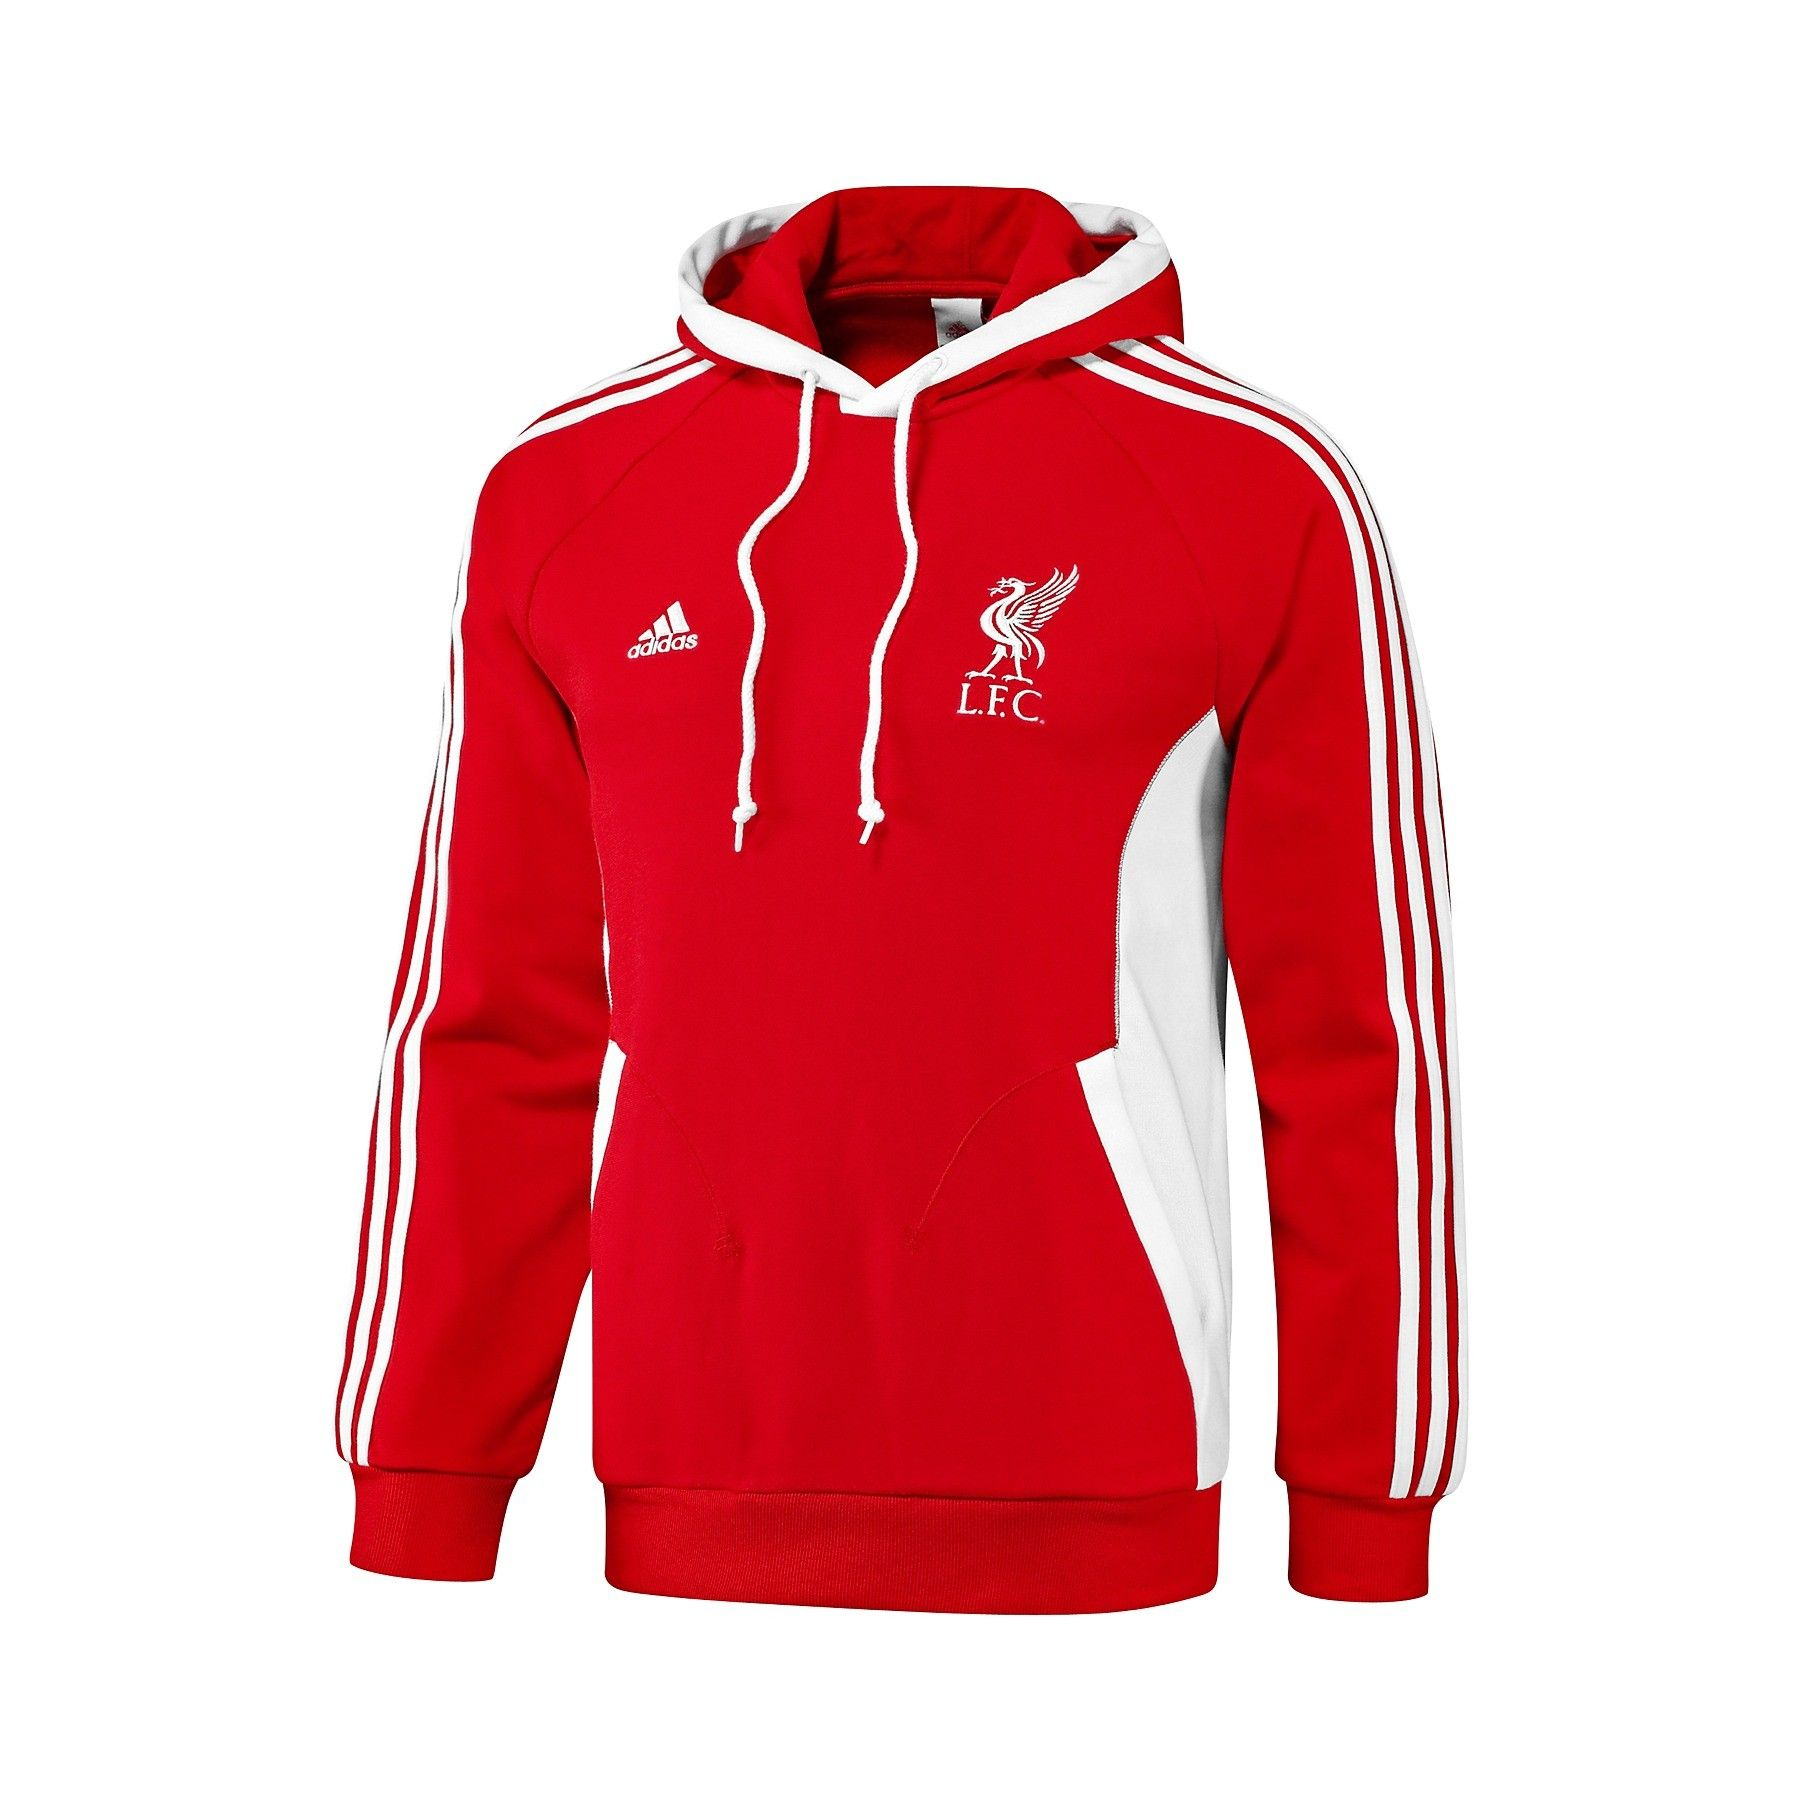 addidas hooded sweatshirts | adidas adidas Liverpool Hooded Sweatshirt